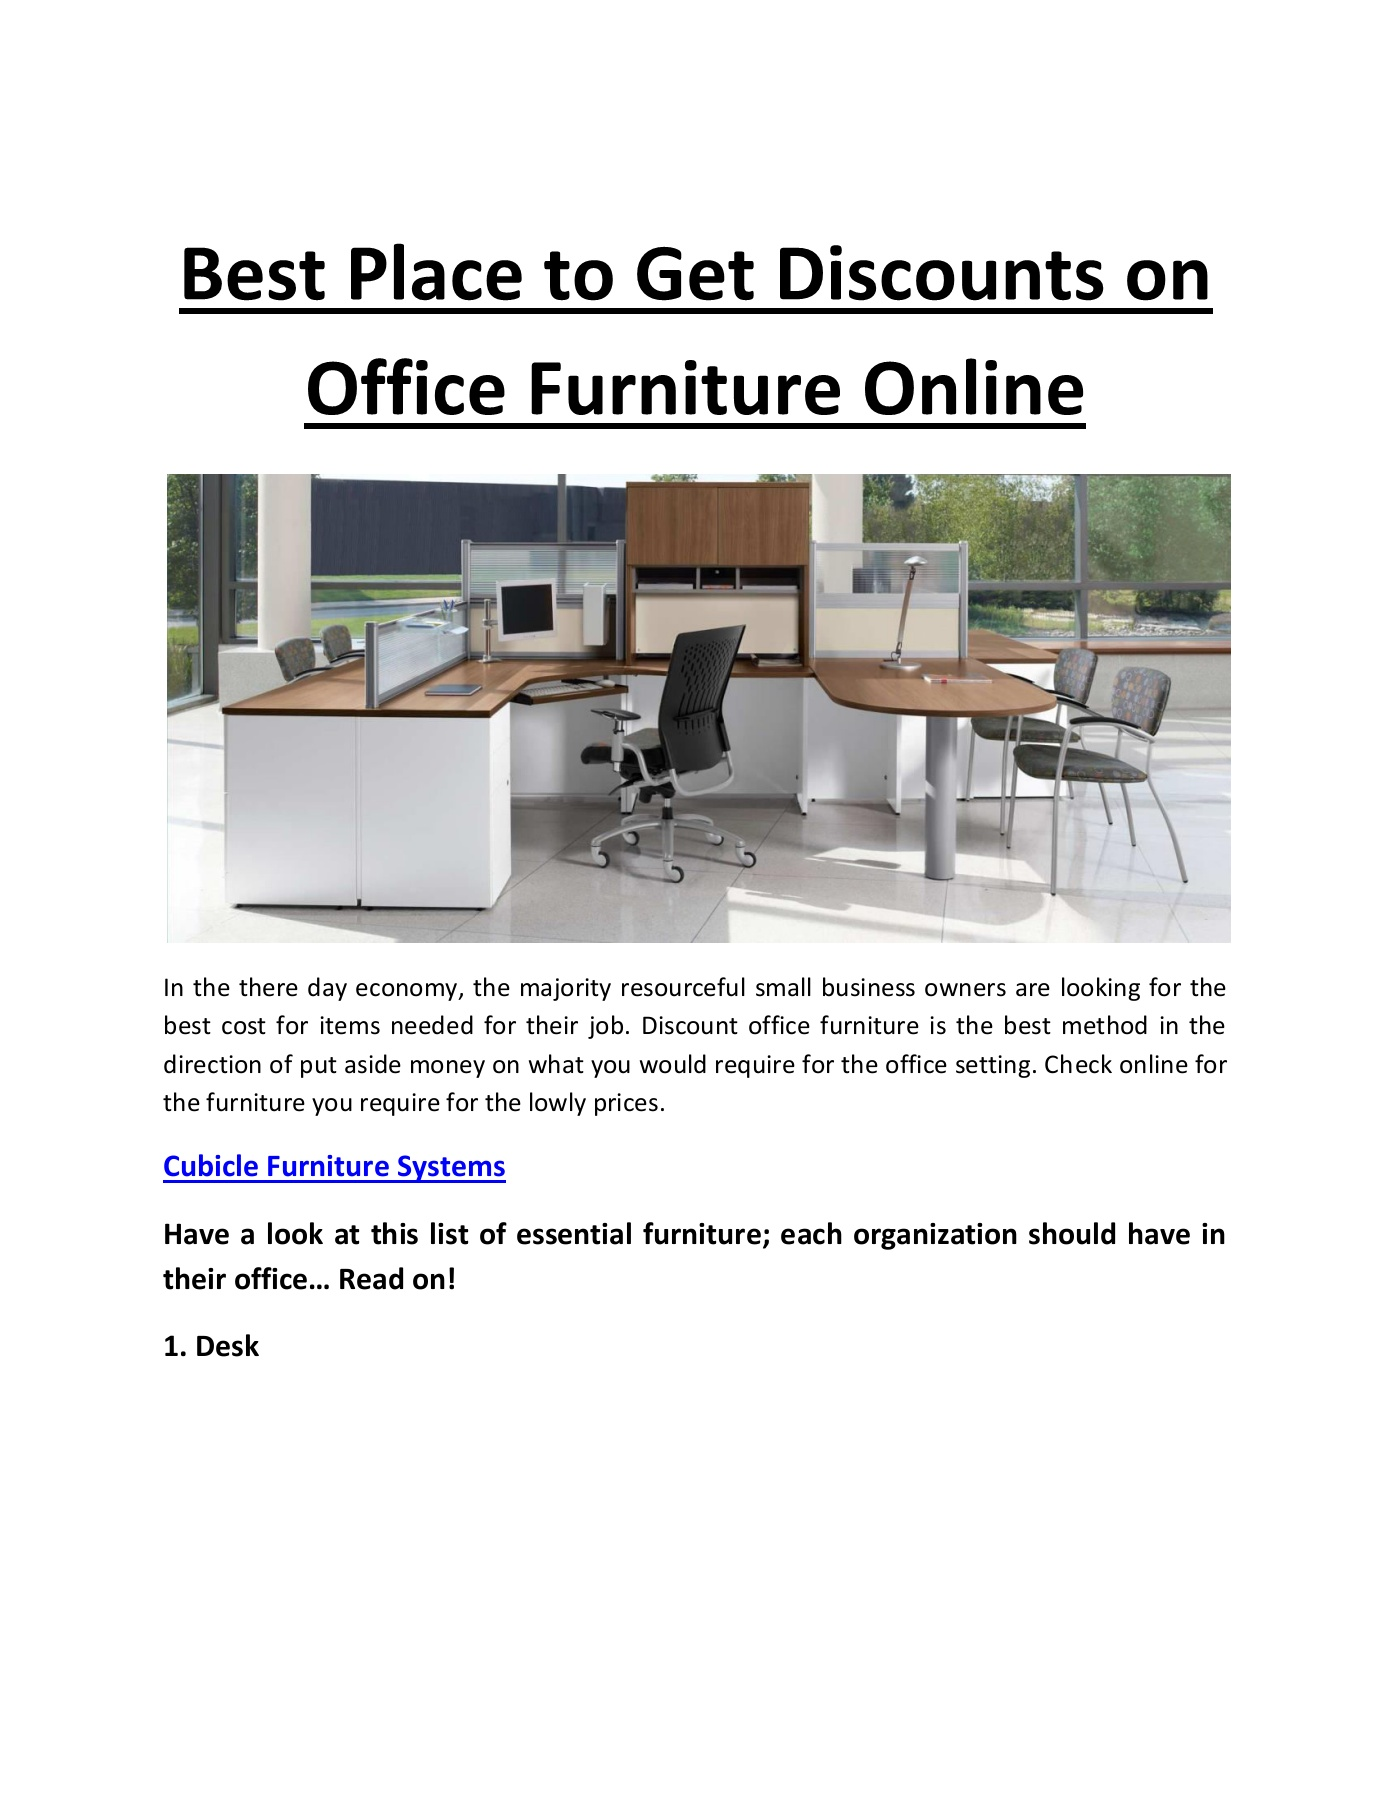 Best Place to Get Discounts on Office Furniture Online